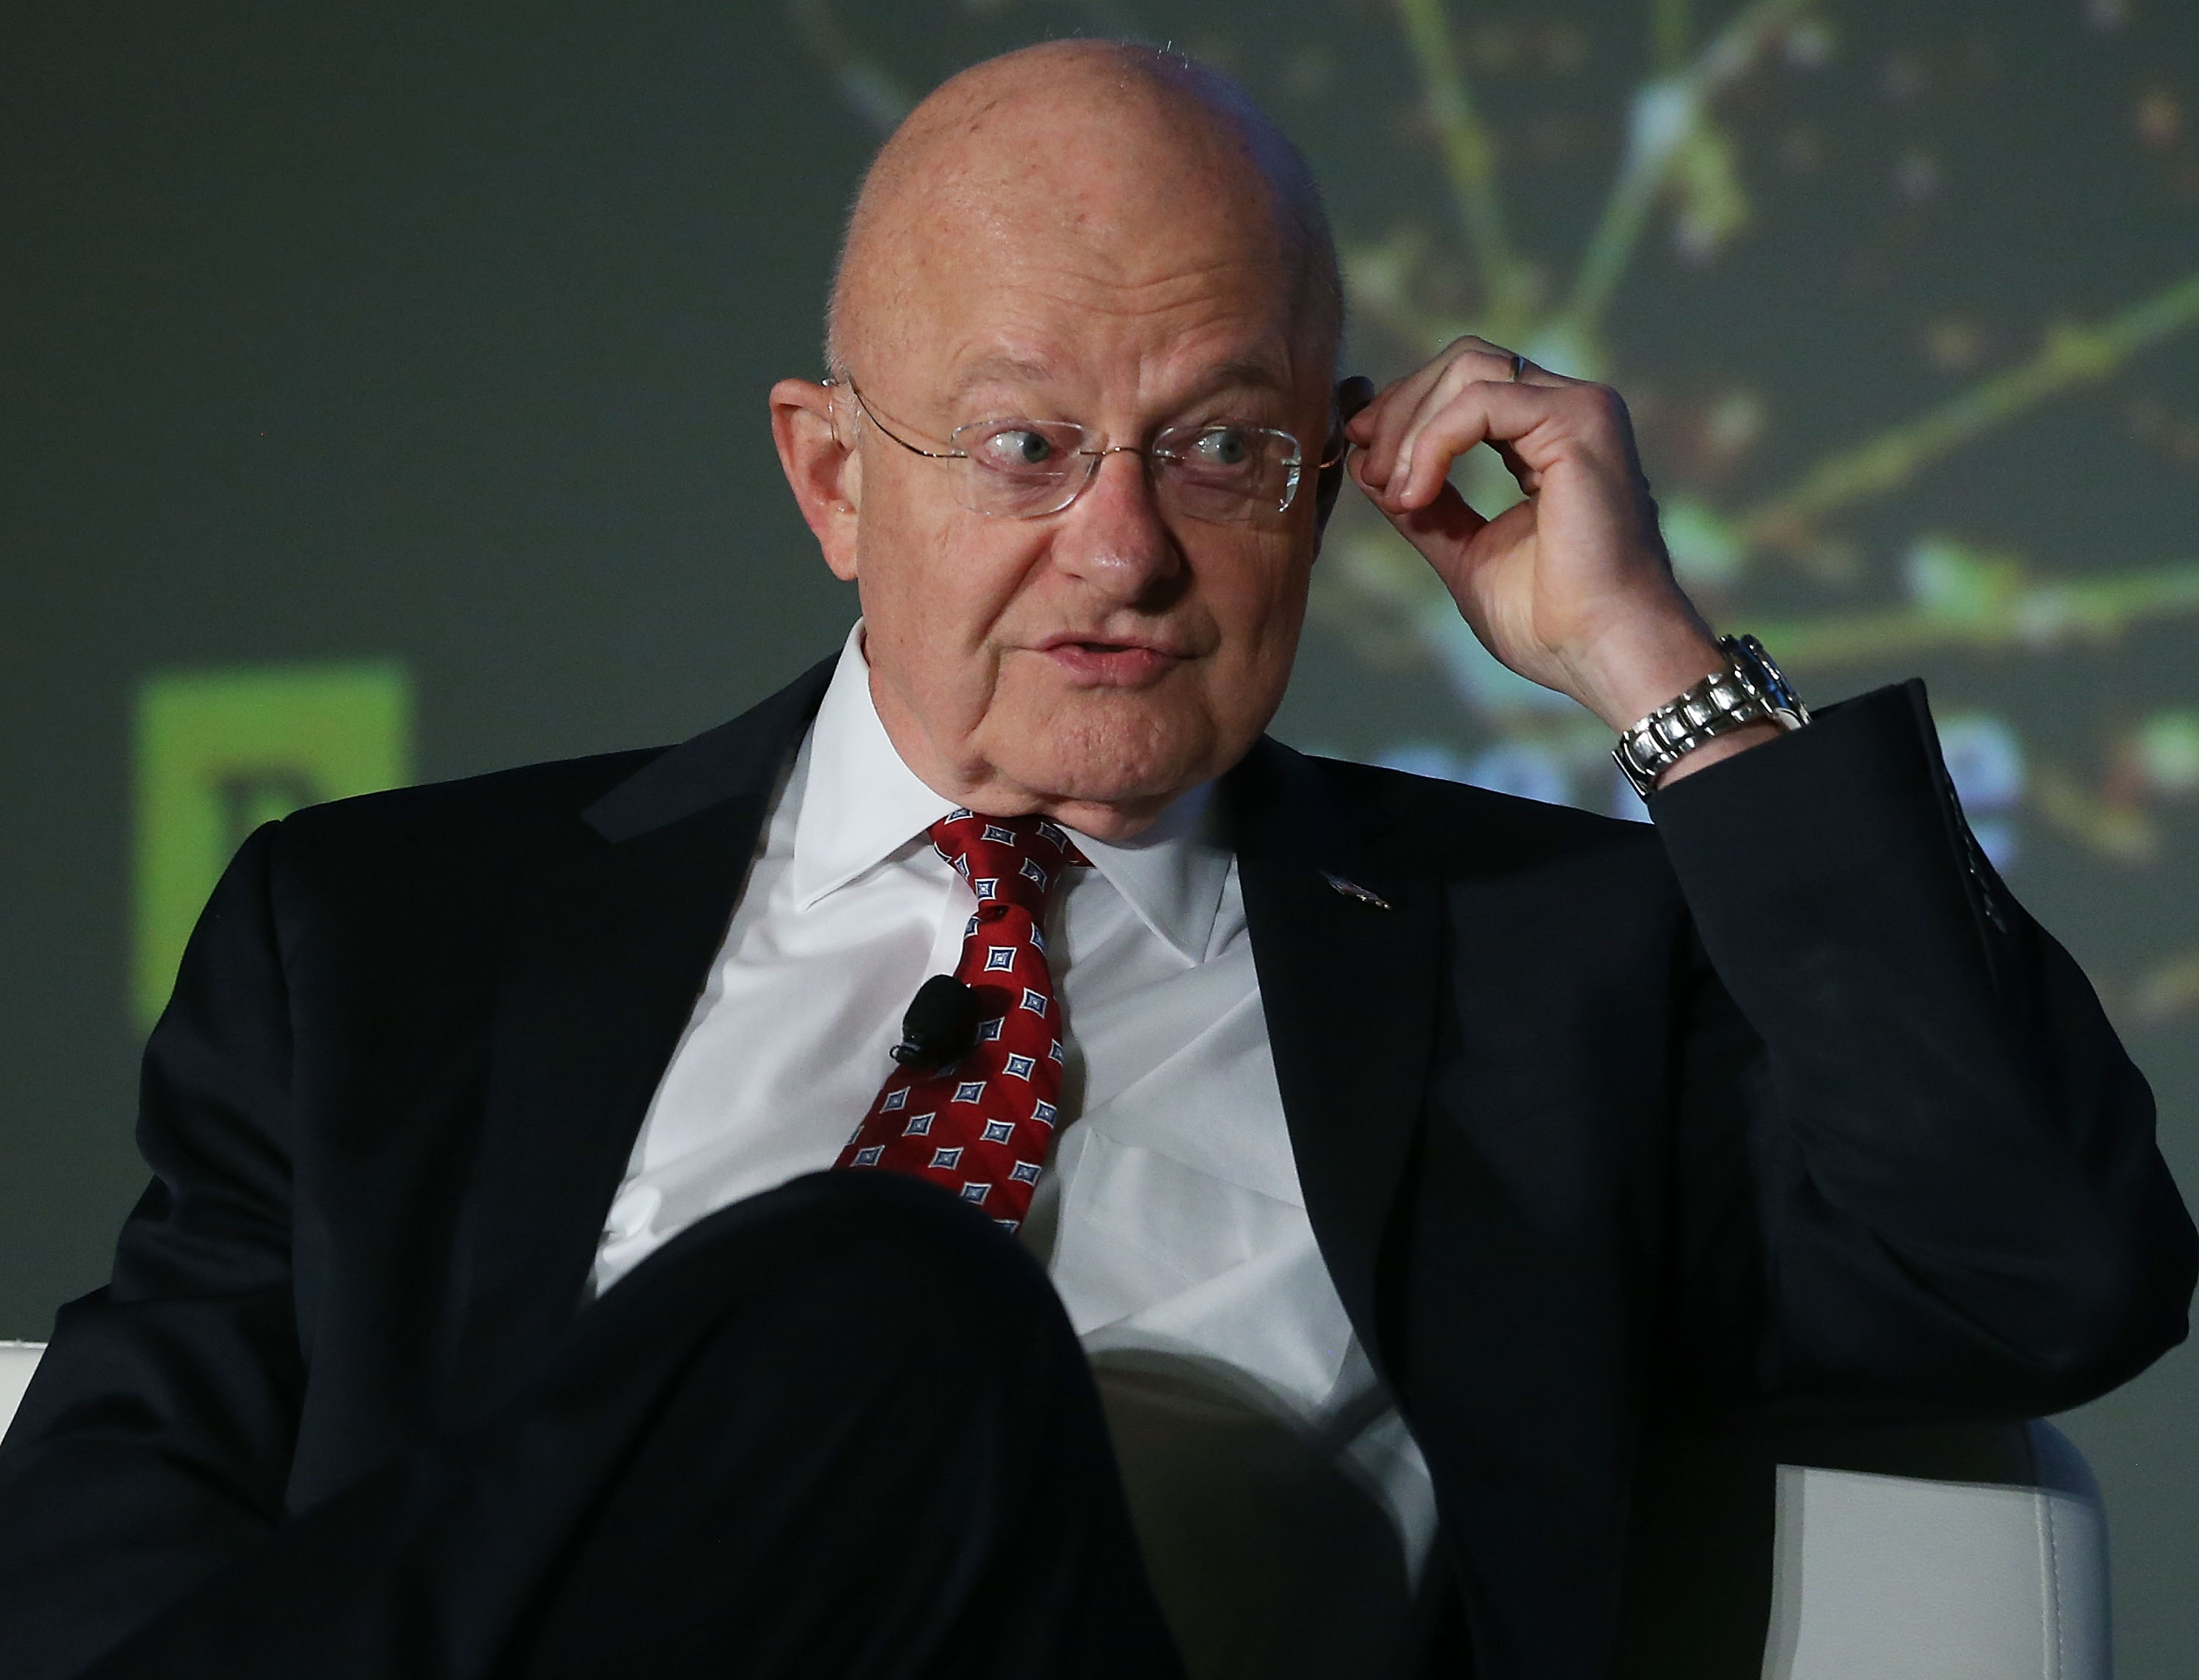 National Intelligence Director Clapper Addresses National Security Summit